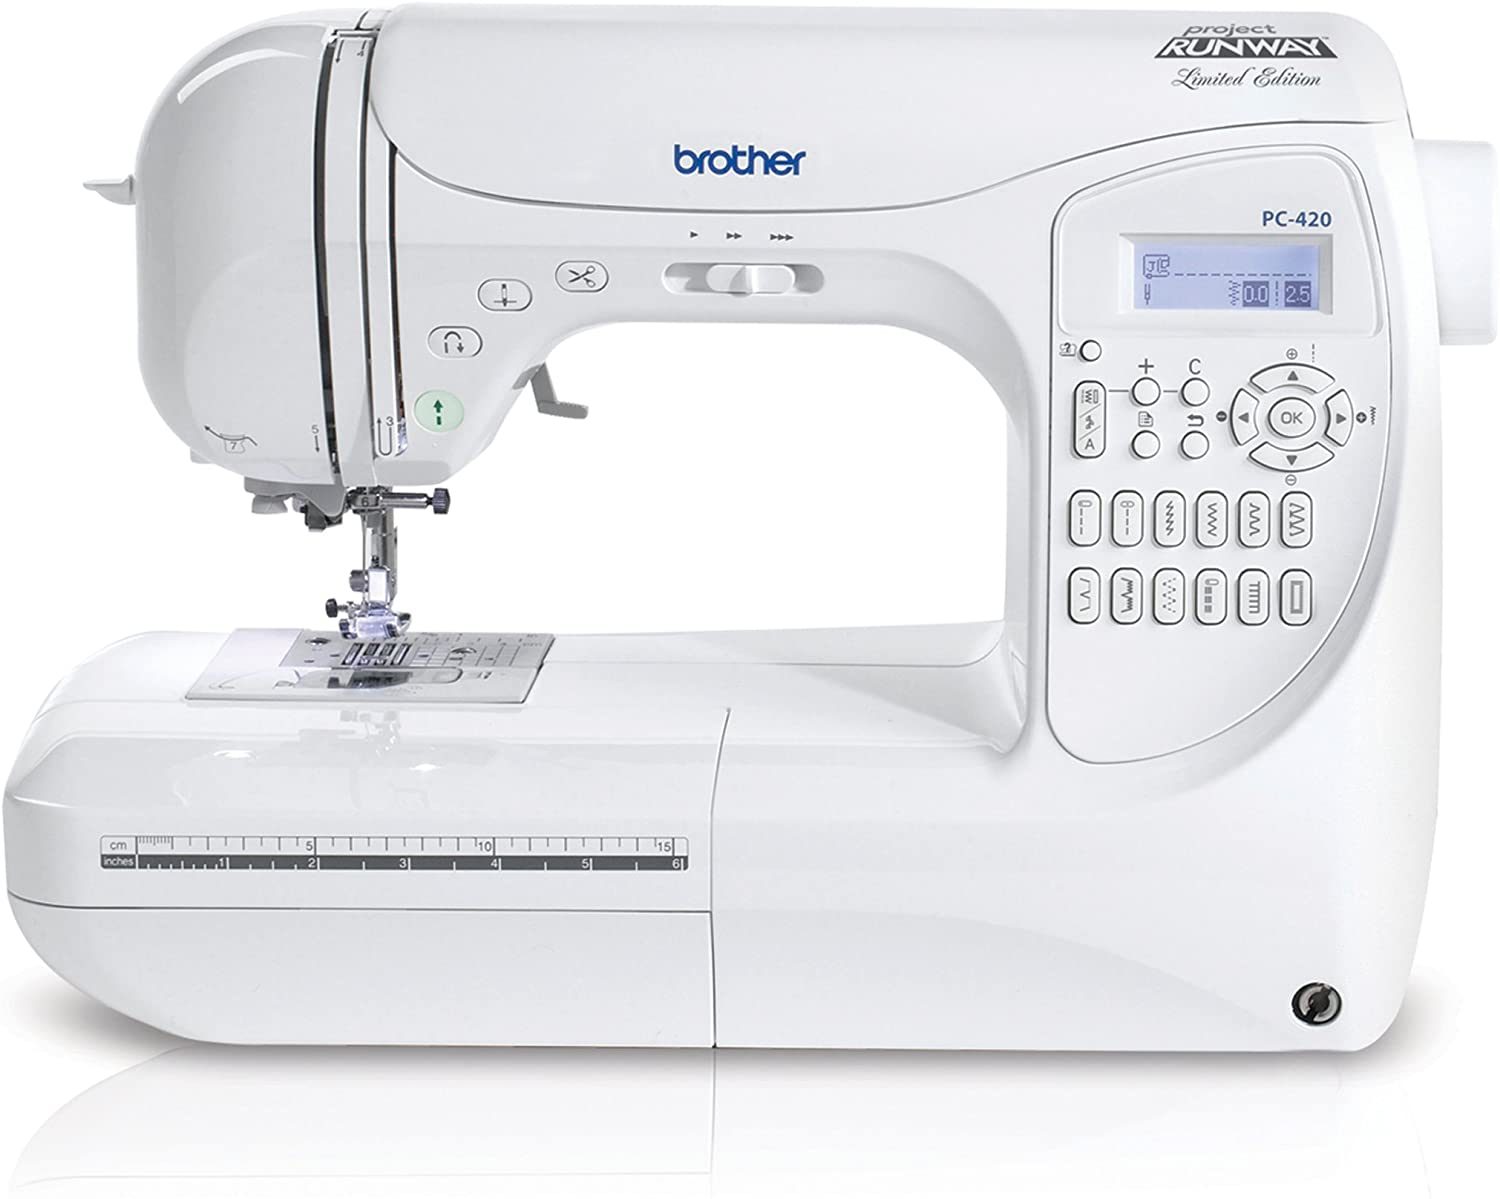 Brother PC-420 PRW Sewing Machine Review